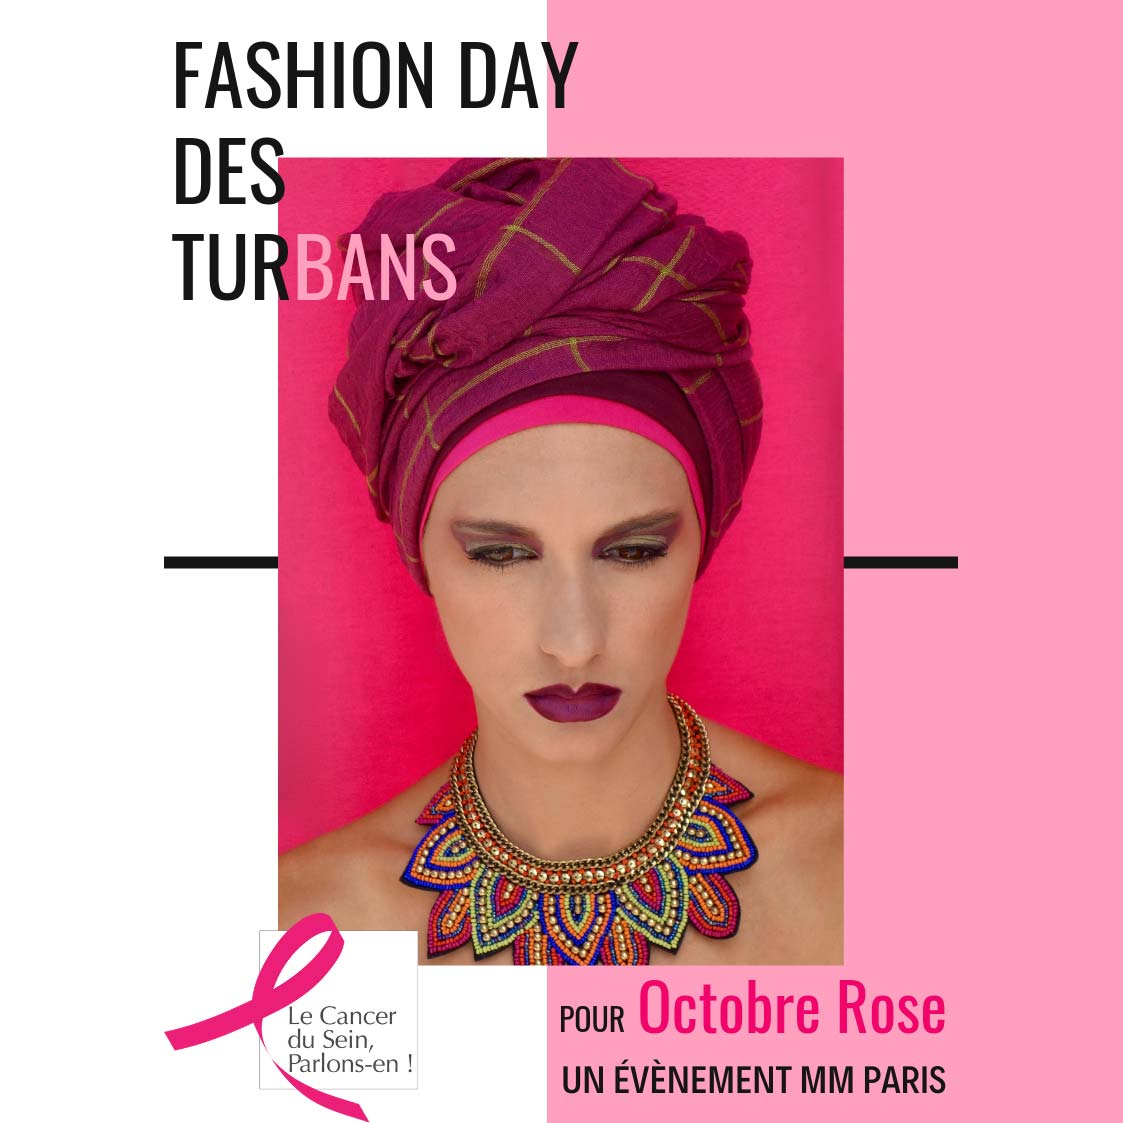 Fashion Day des turbans MM Paris Défilé pour Octobre Rose